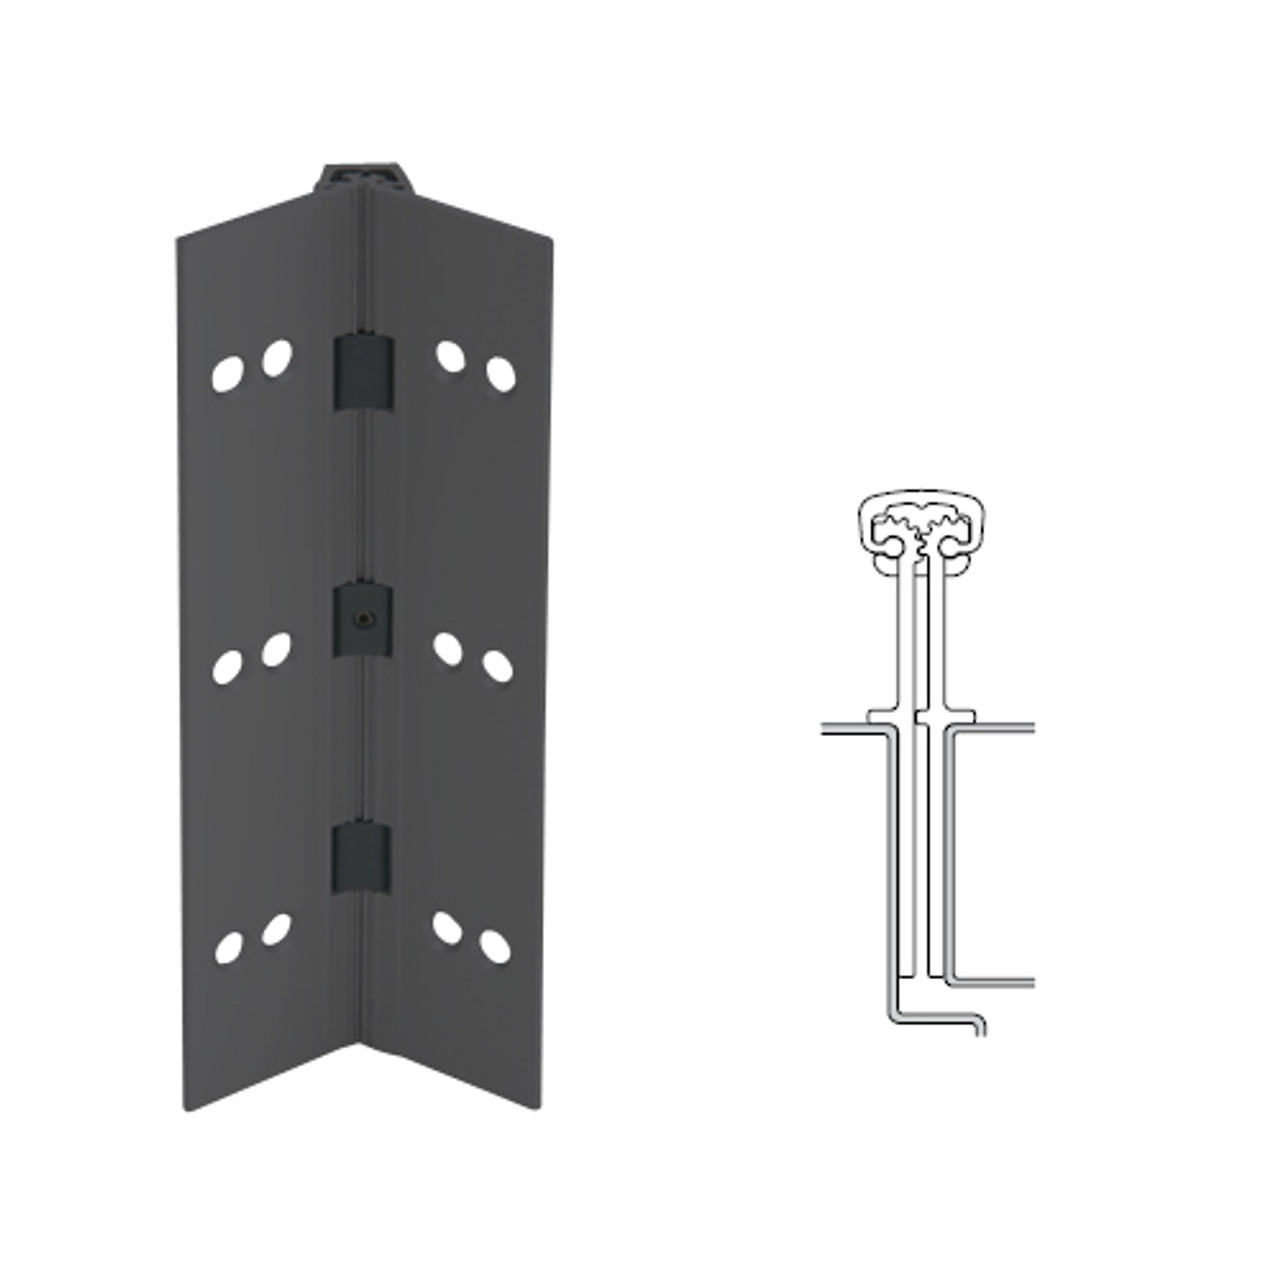 040XY-315AN-85-TFWD IVES Full Mortise Continuous Geared Hinges with Thread Forming Screws in Anodized Black